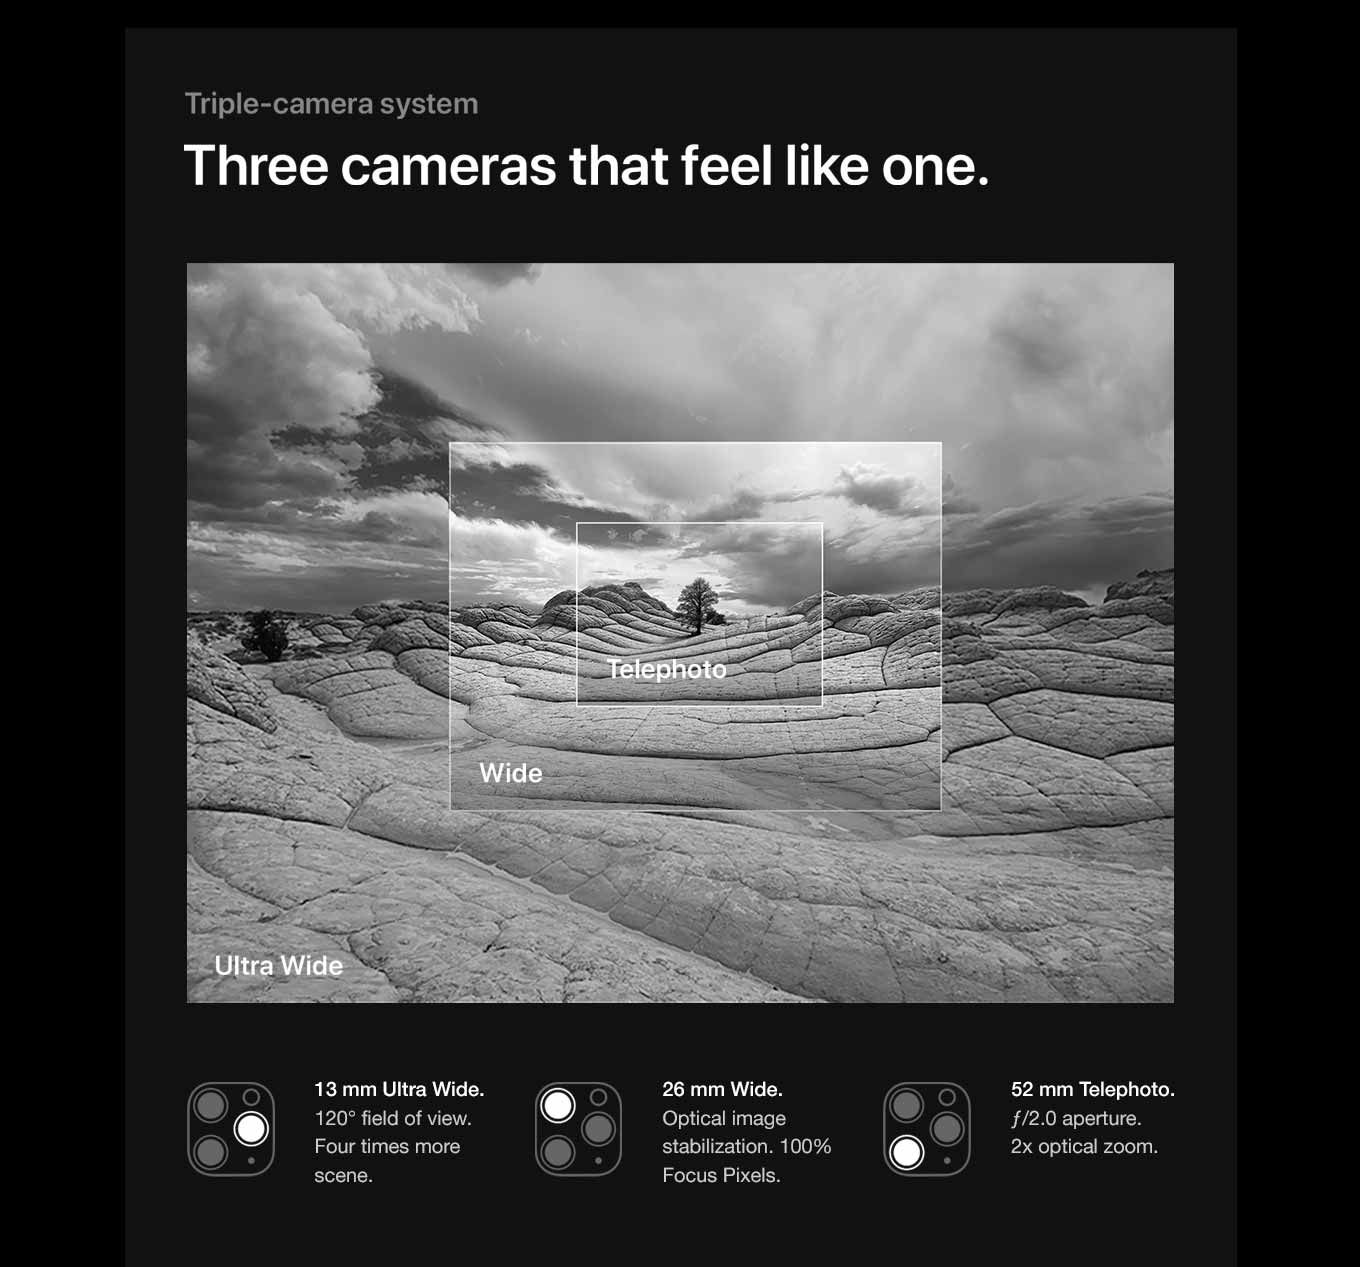 Triple-camera system. Three cameras that feel like one.